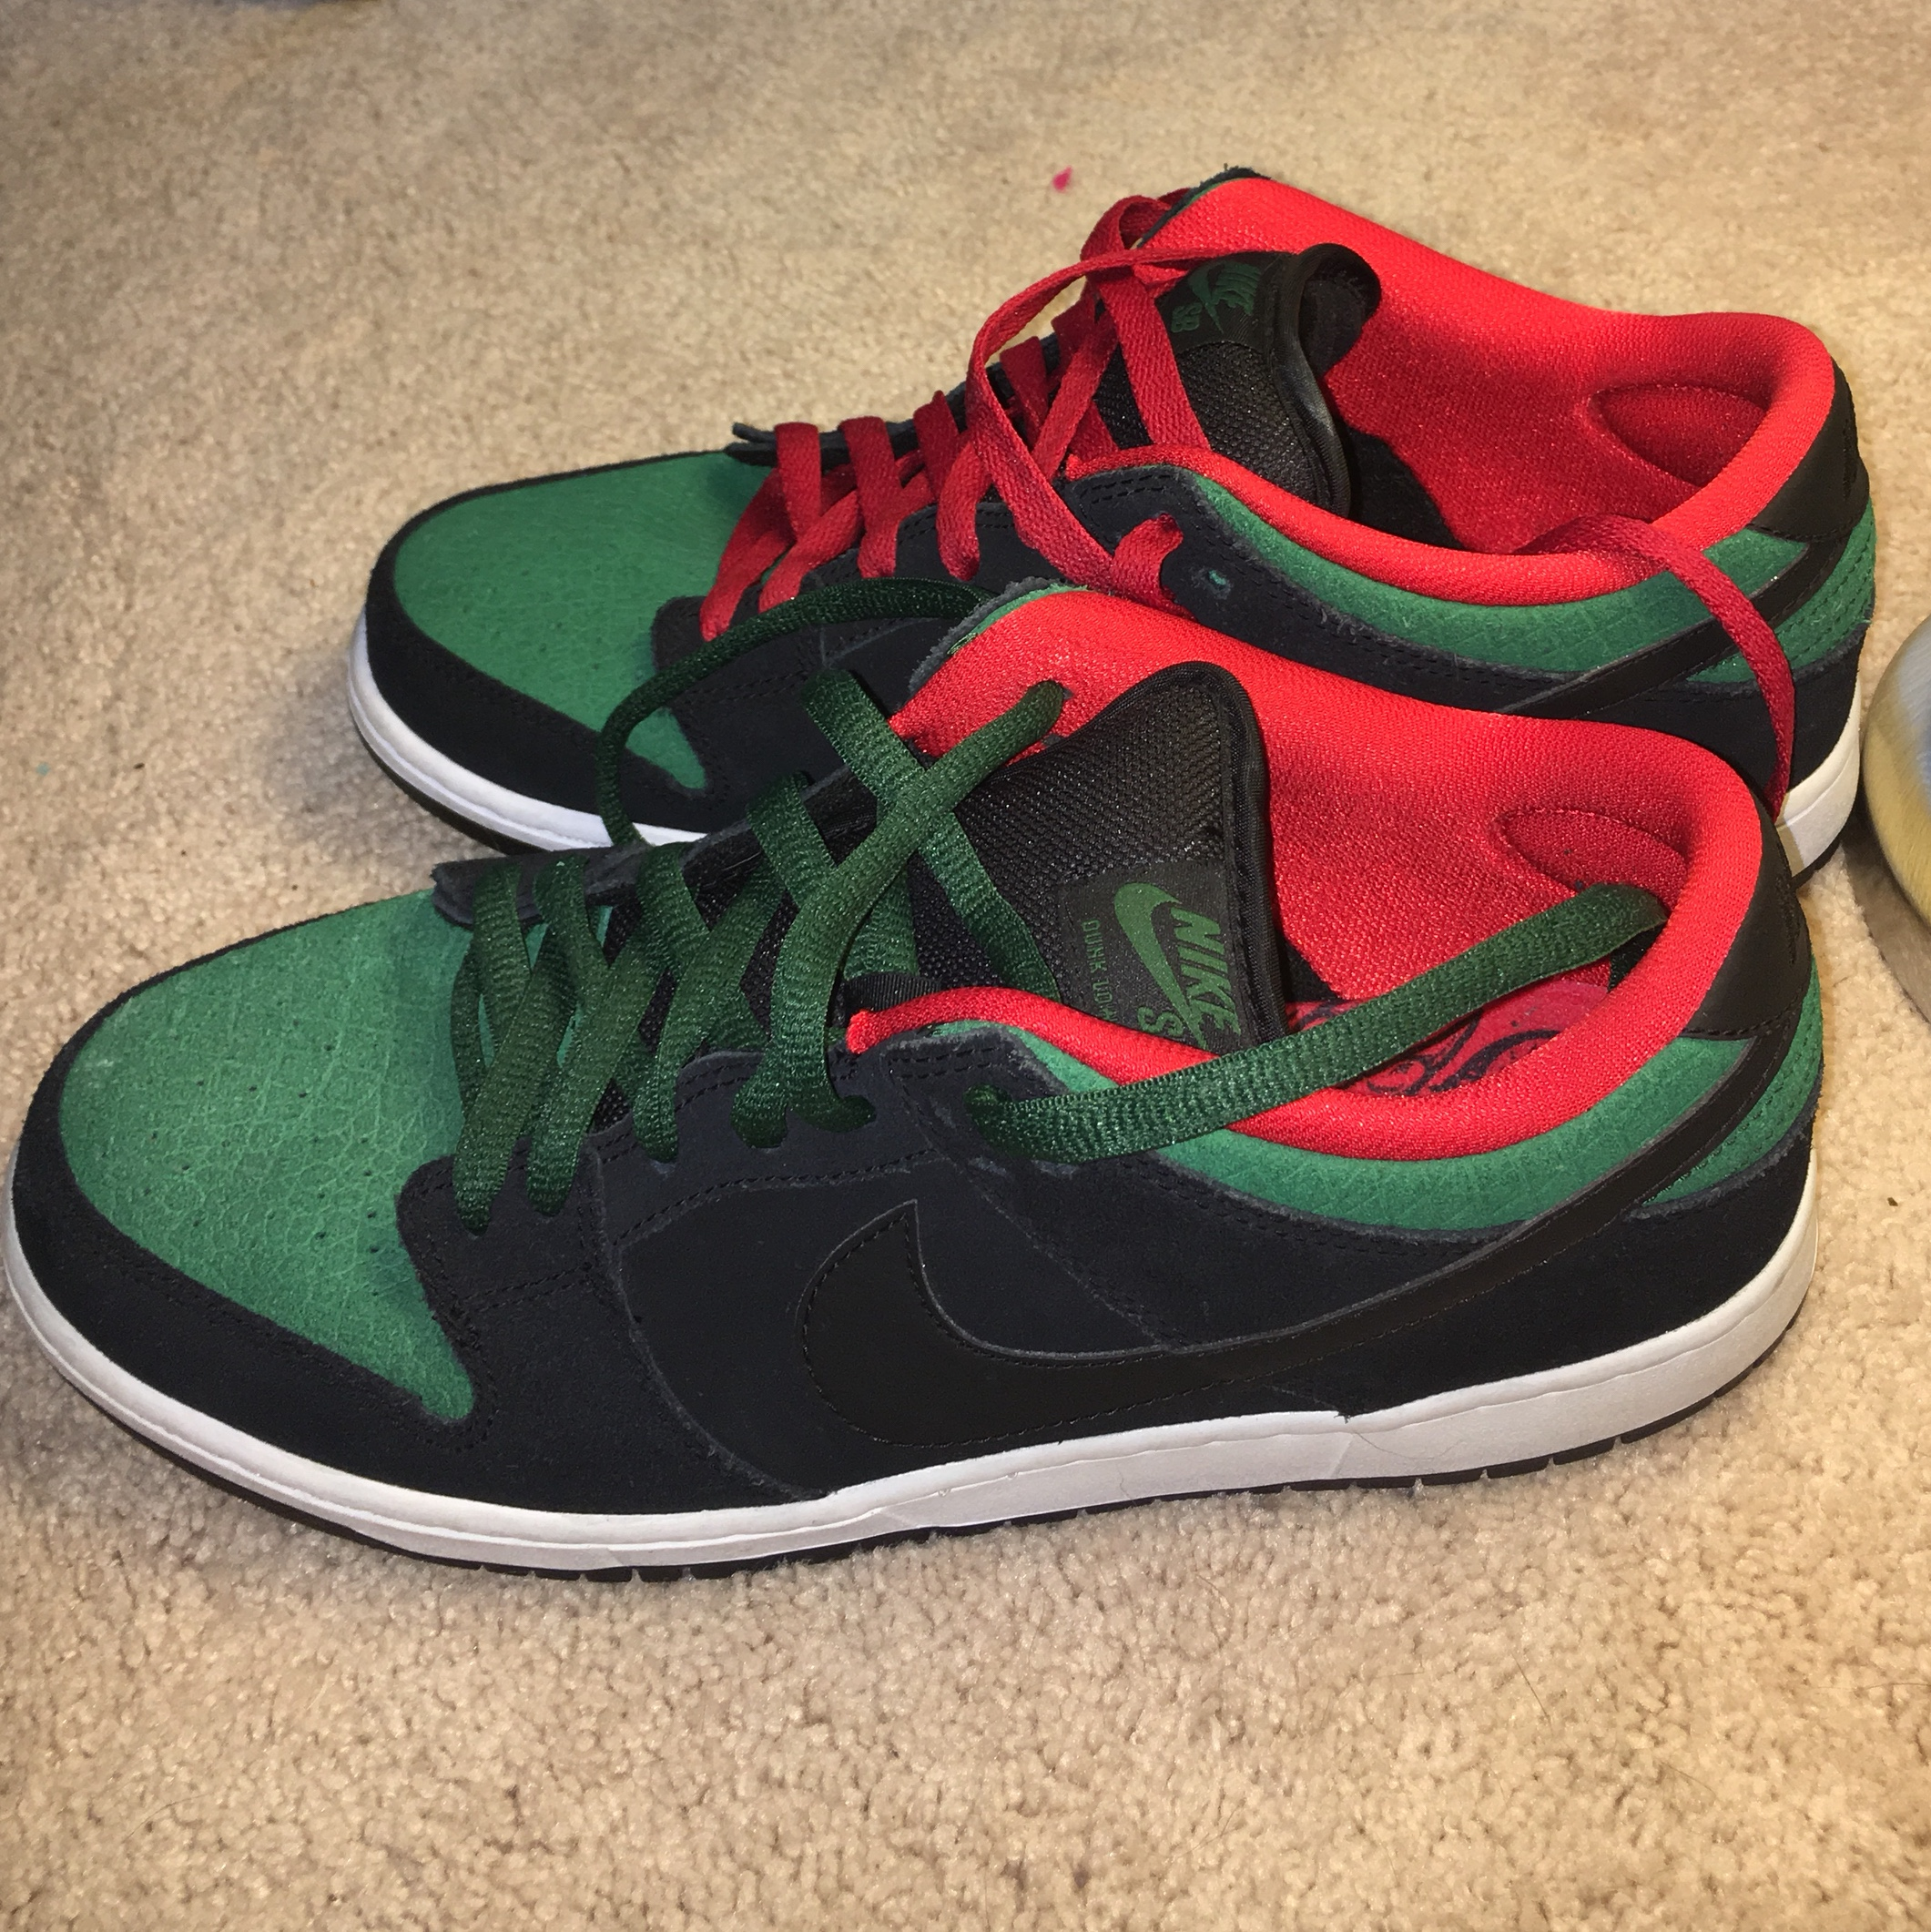 """low priced 7200e 081c8 Nike SB dunk low """"gucci"""" Size 10 great condition... - Depop"""